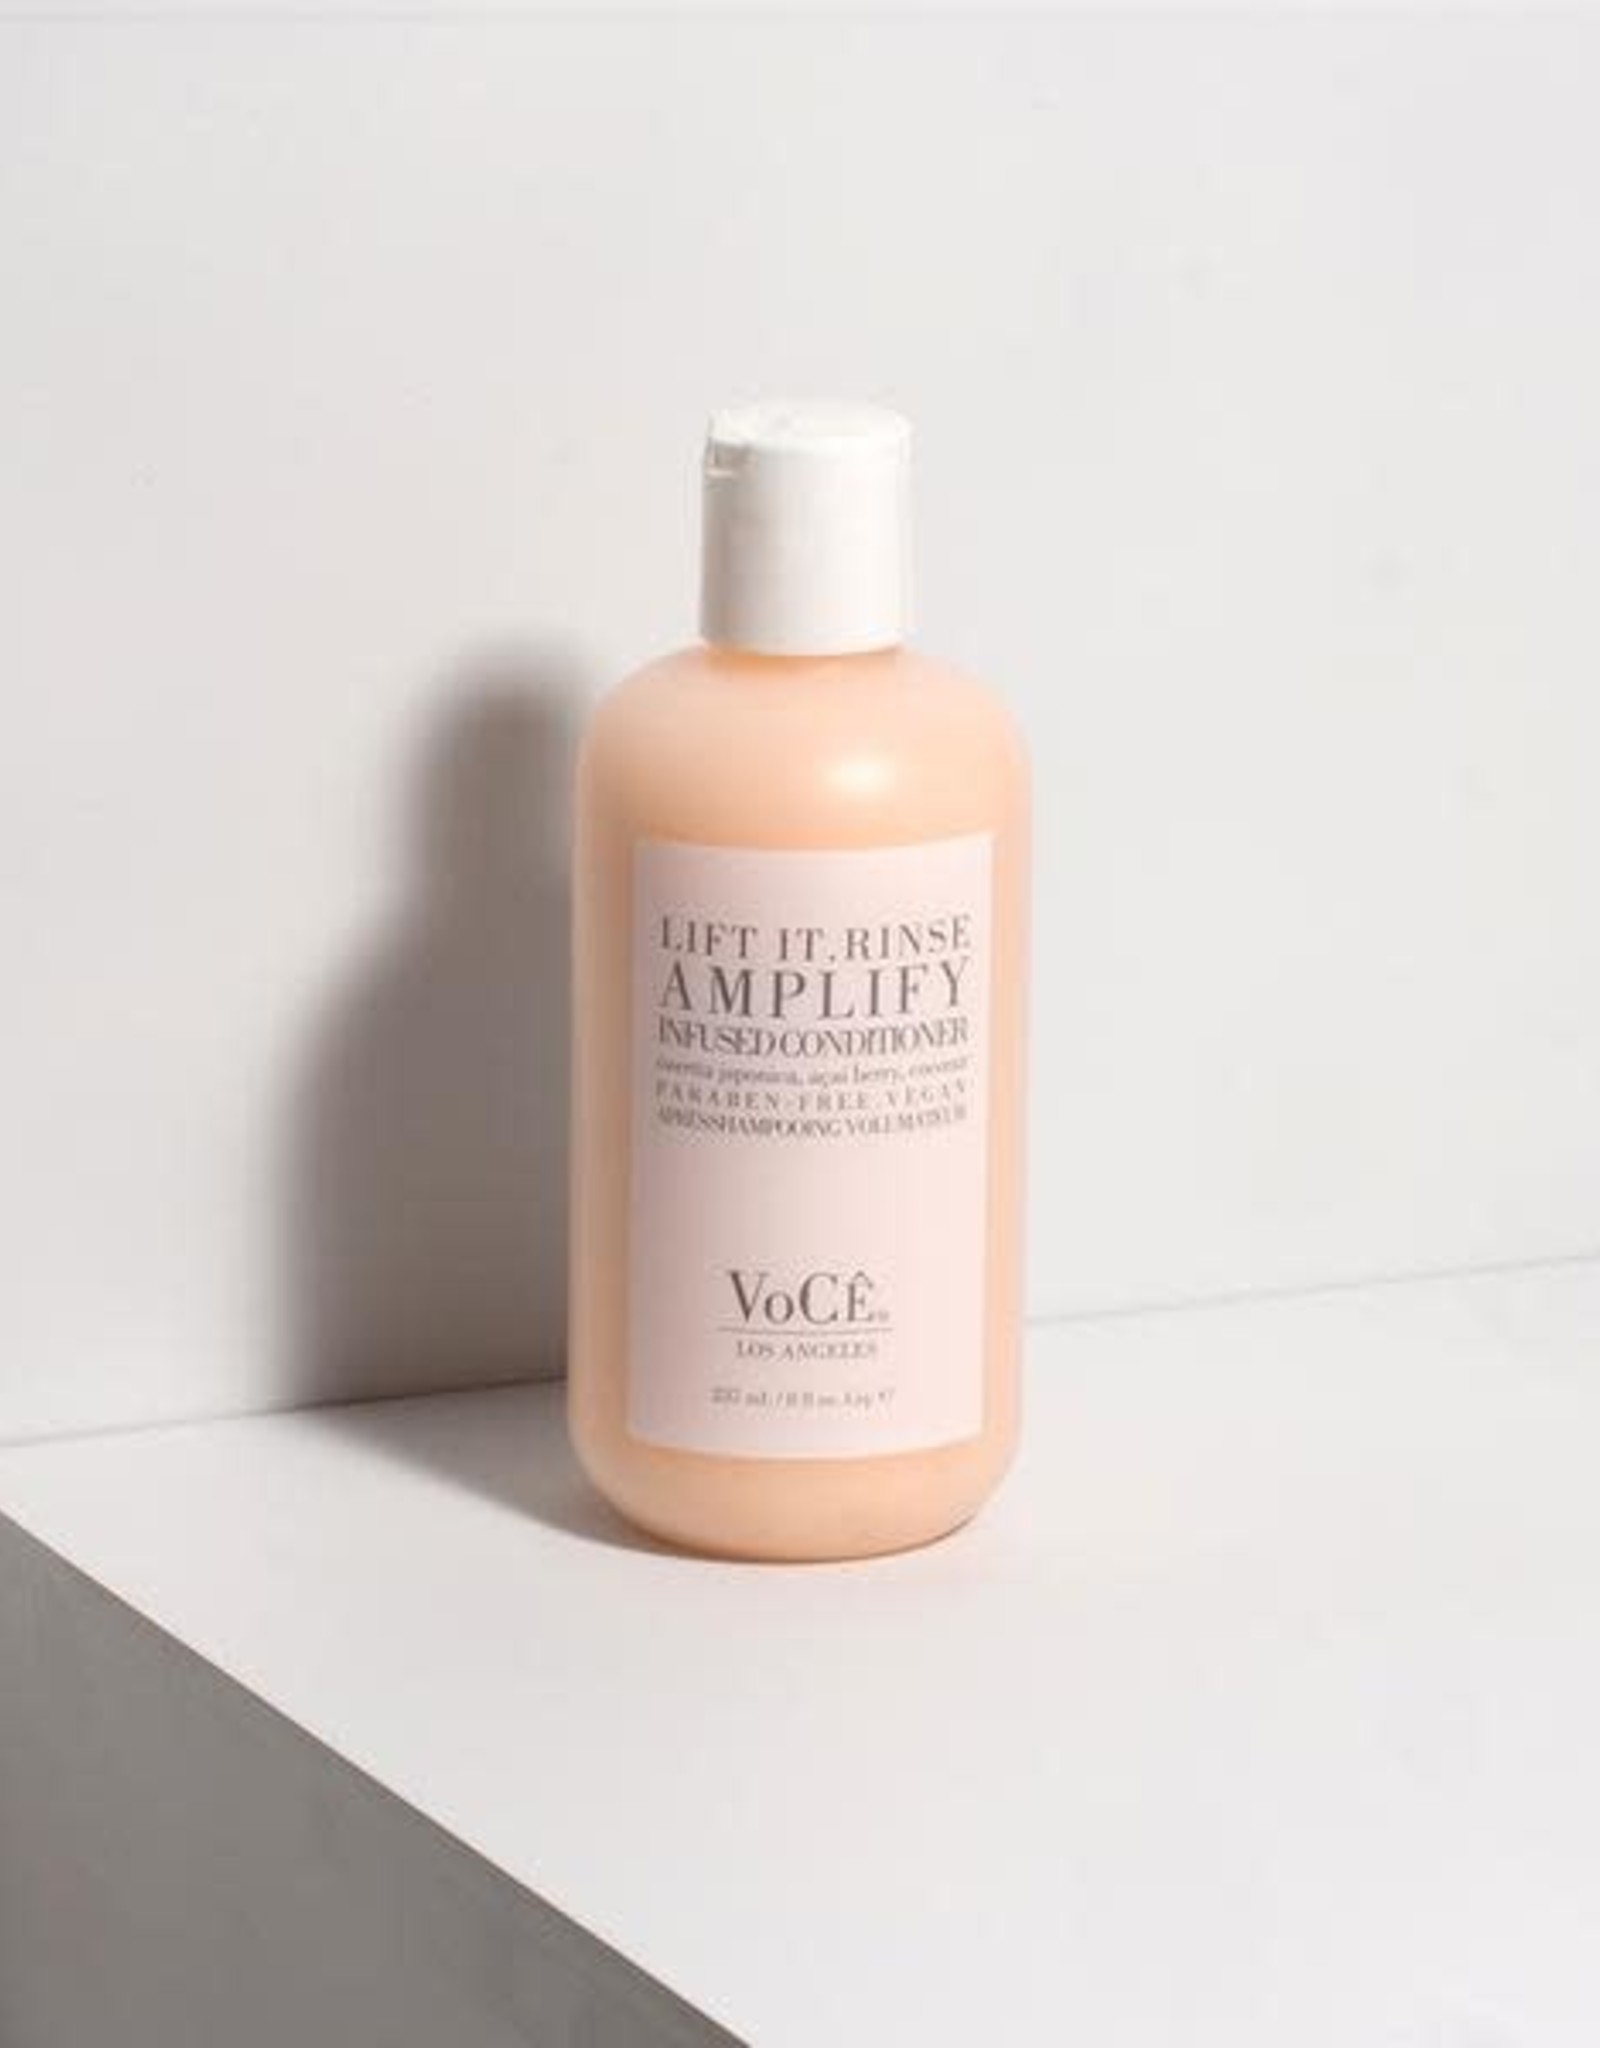 Voce Amplify Conditioner